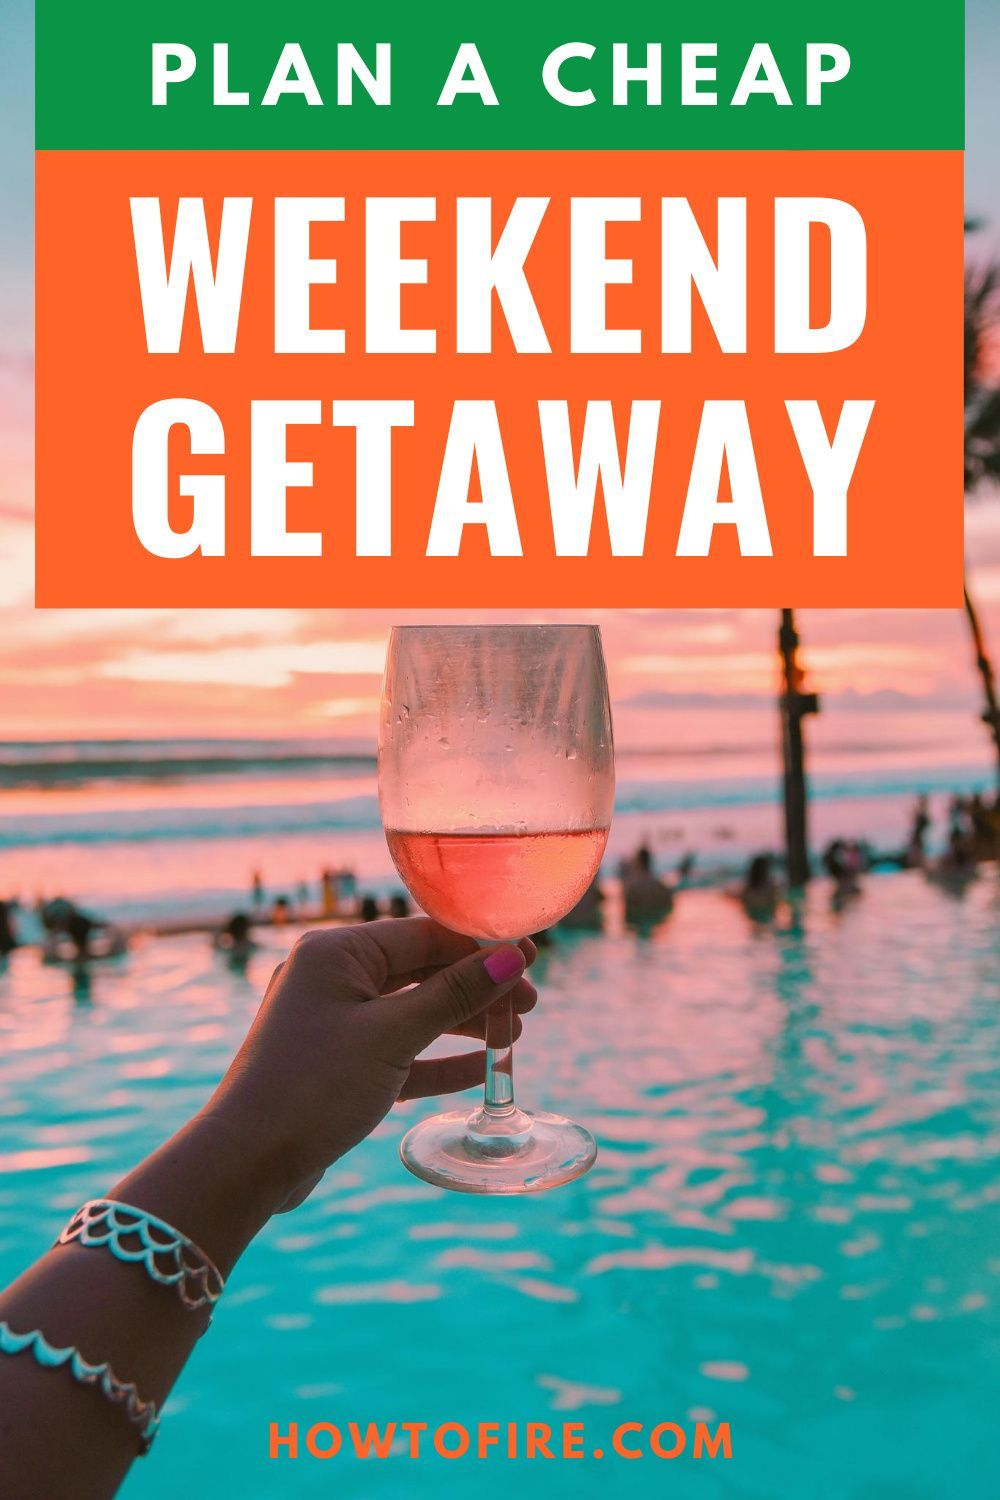 Weekend getaways allow you a chance to escape from the hustle and bustle of life nat a fraction of the cost of a more extended vacation. And with a little planning, you can take several cheap weekend getaways throughout the year and scratch your travel itch for very little money. Here are the best ways to plan cheap weekend getaways. #travelhacking #travelhack